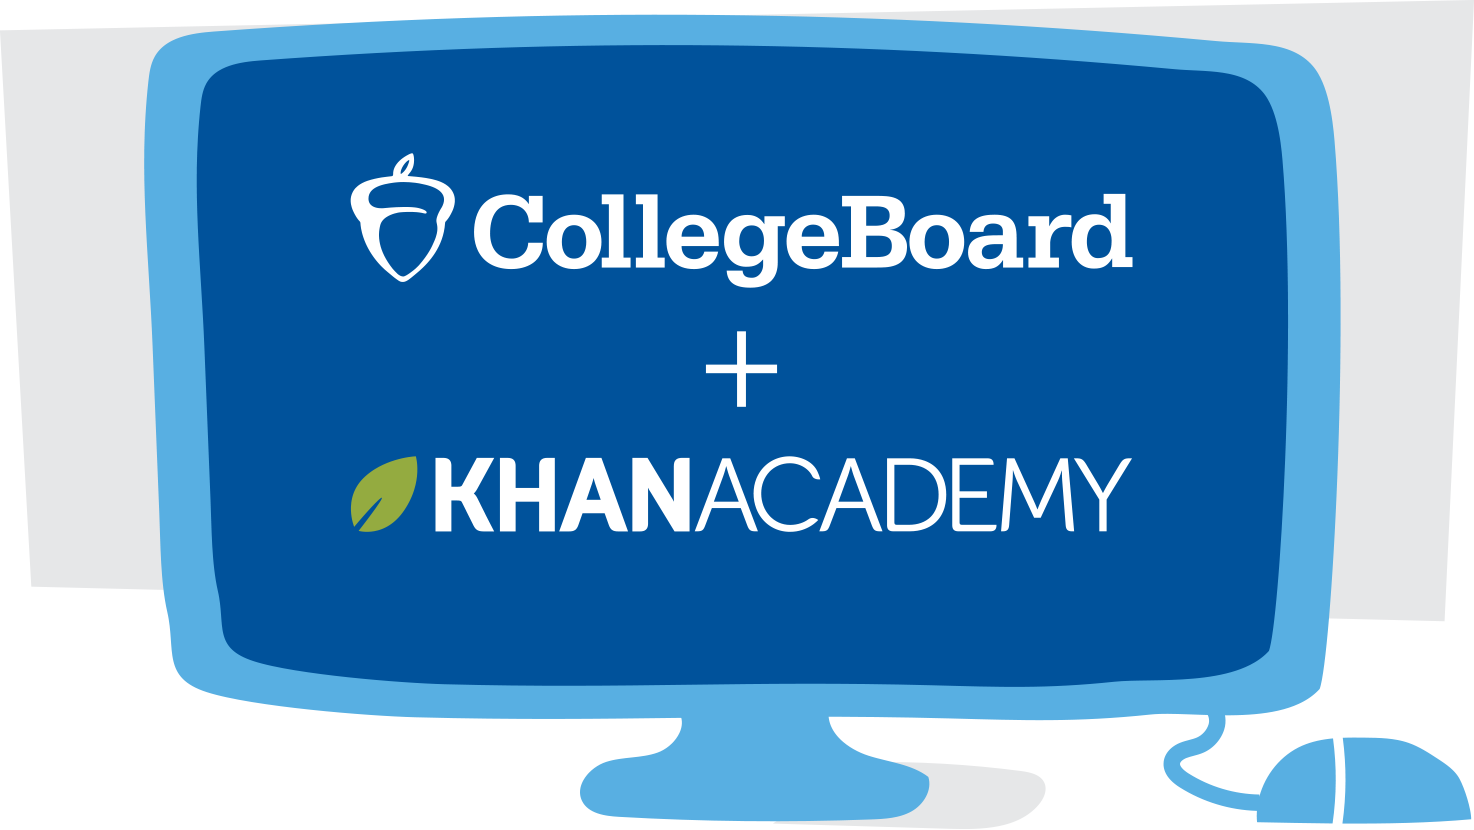 The Collegeboard Homepage